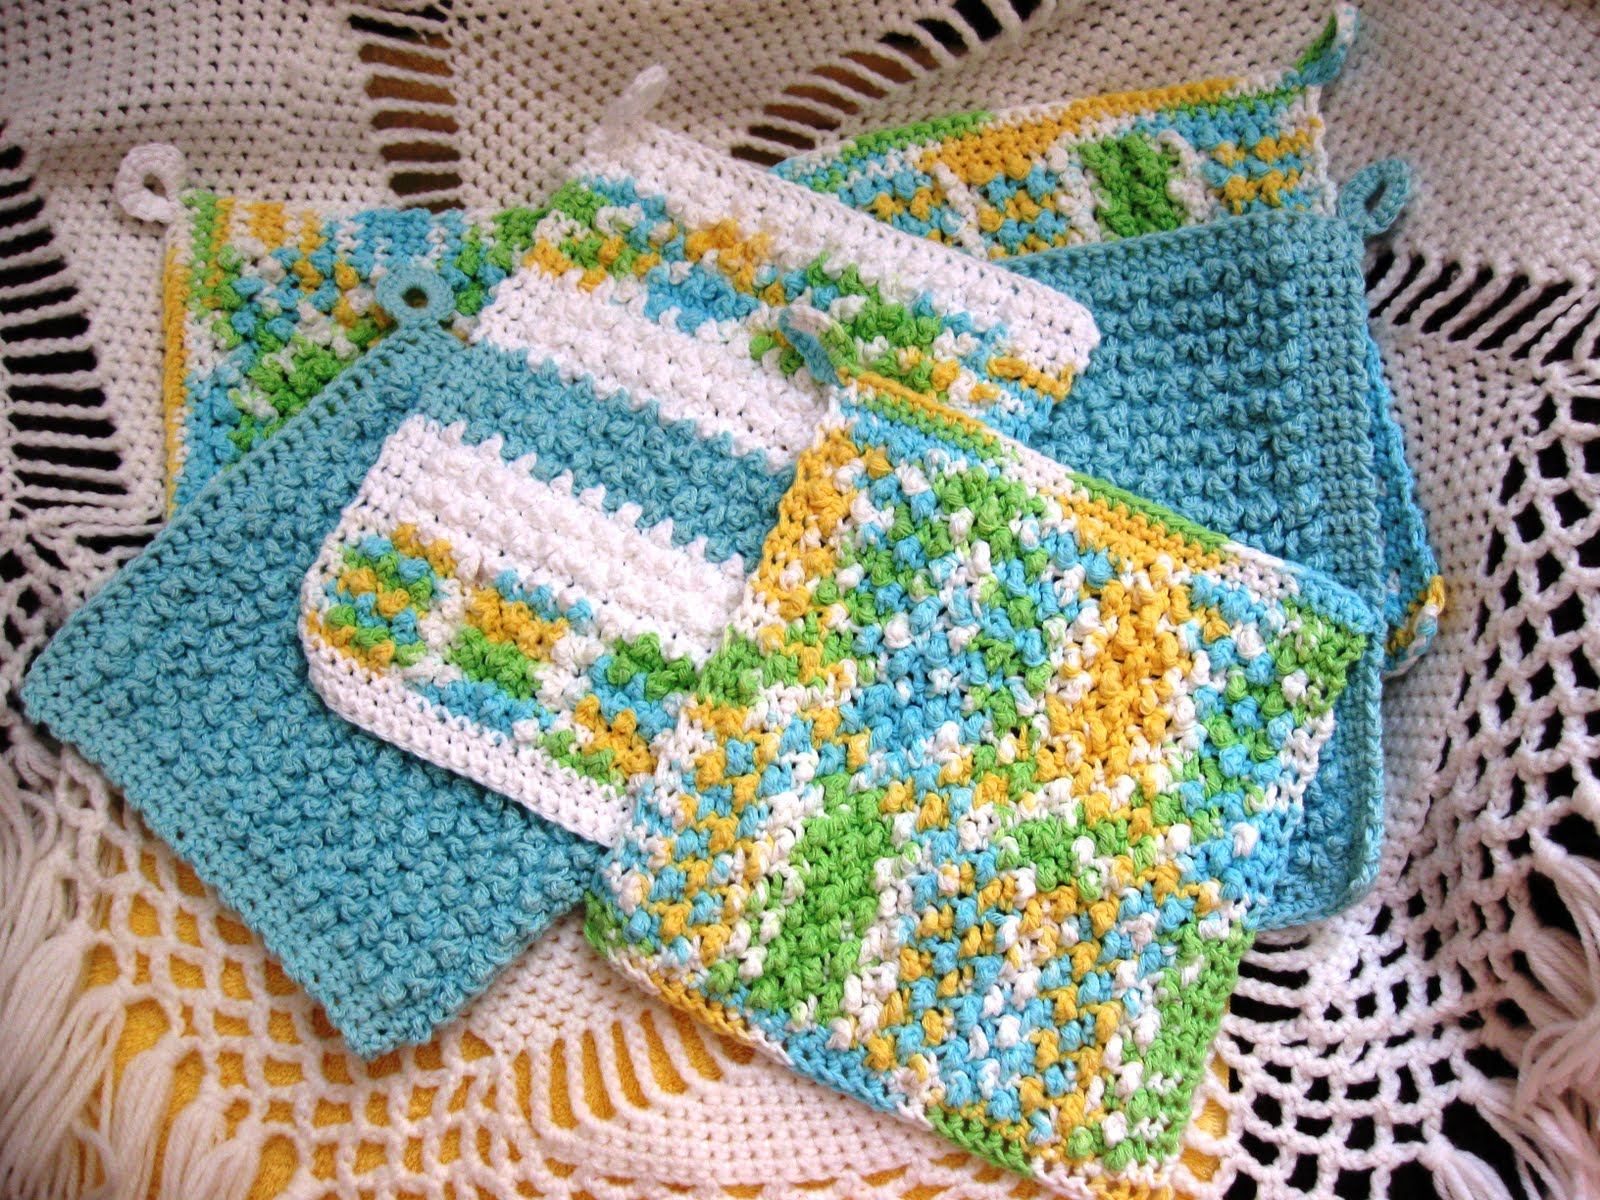 Cloths are crocheted in a seed stitch, to create a nubby texture for ...